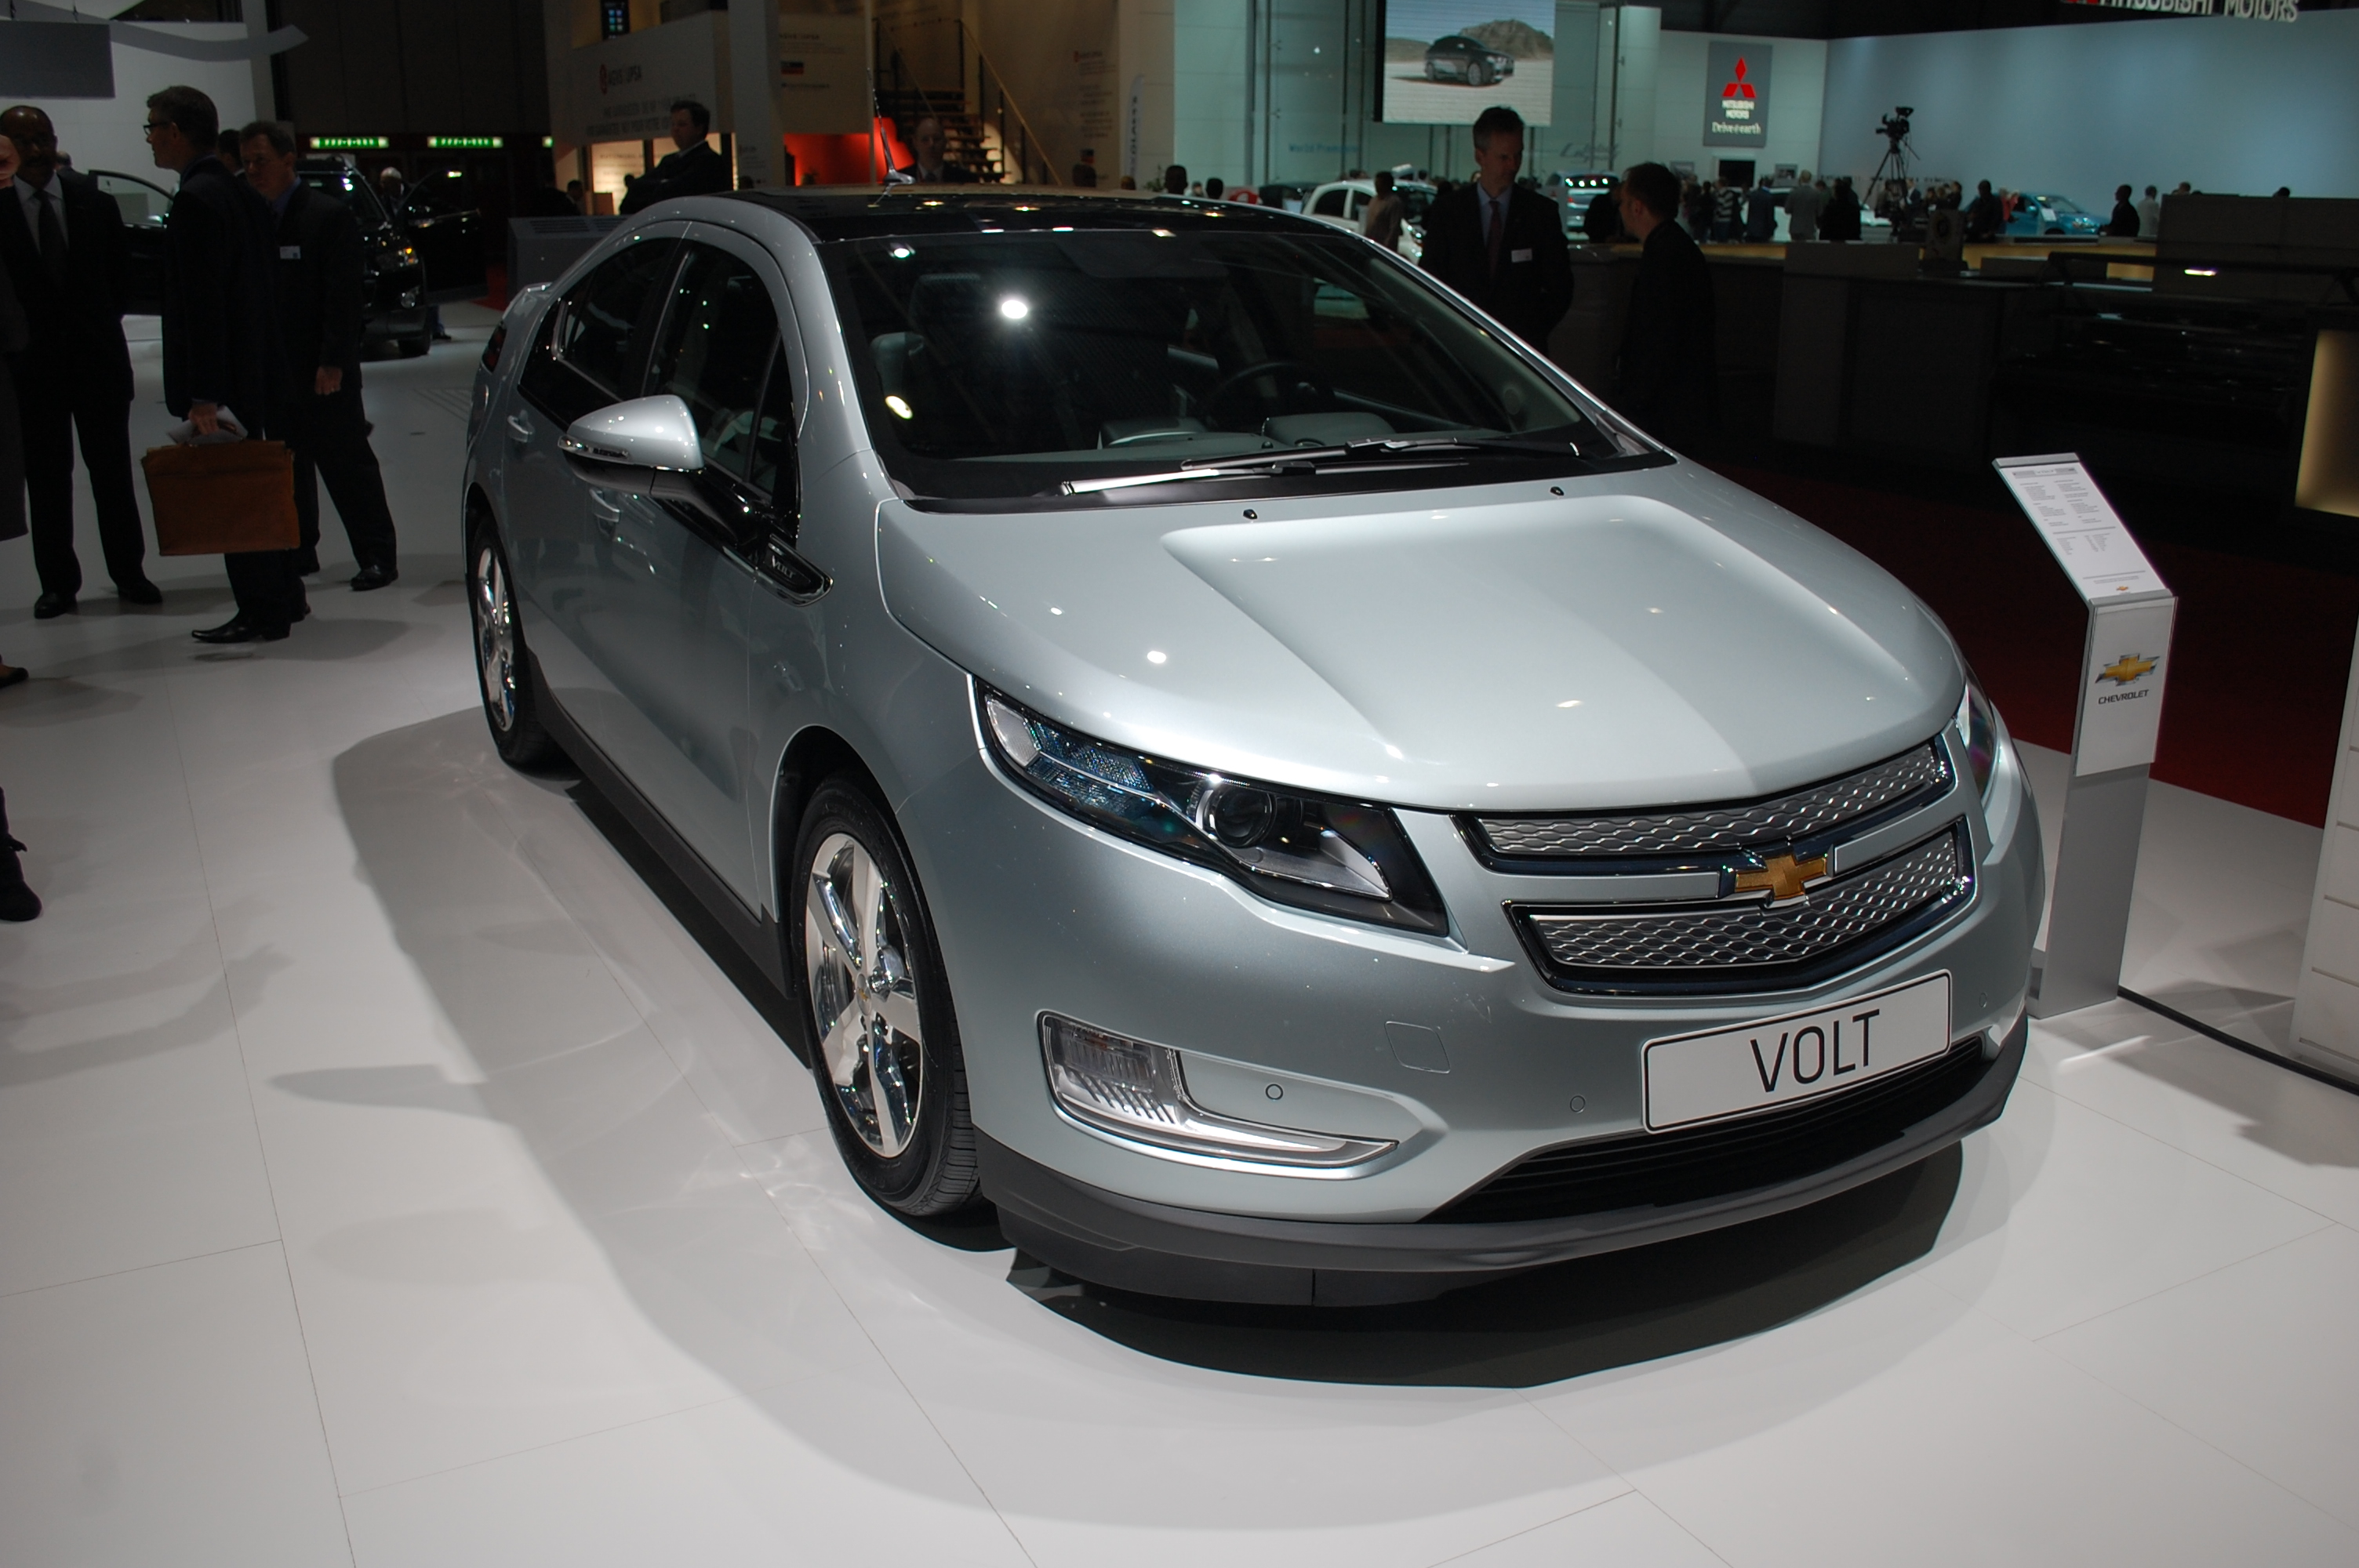 2012 Chevrolet Volt Subtle Changes Surface Keyless Entry Included